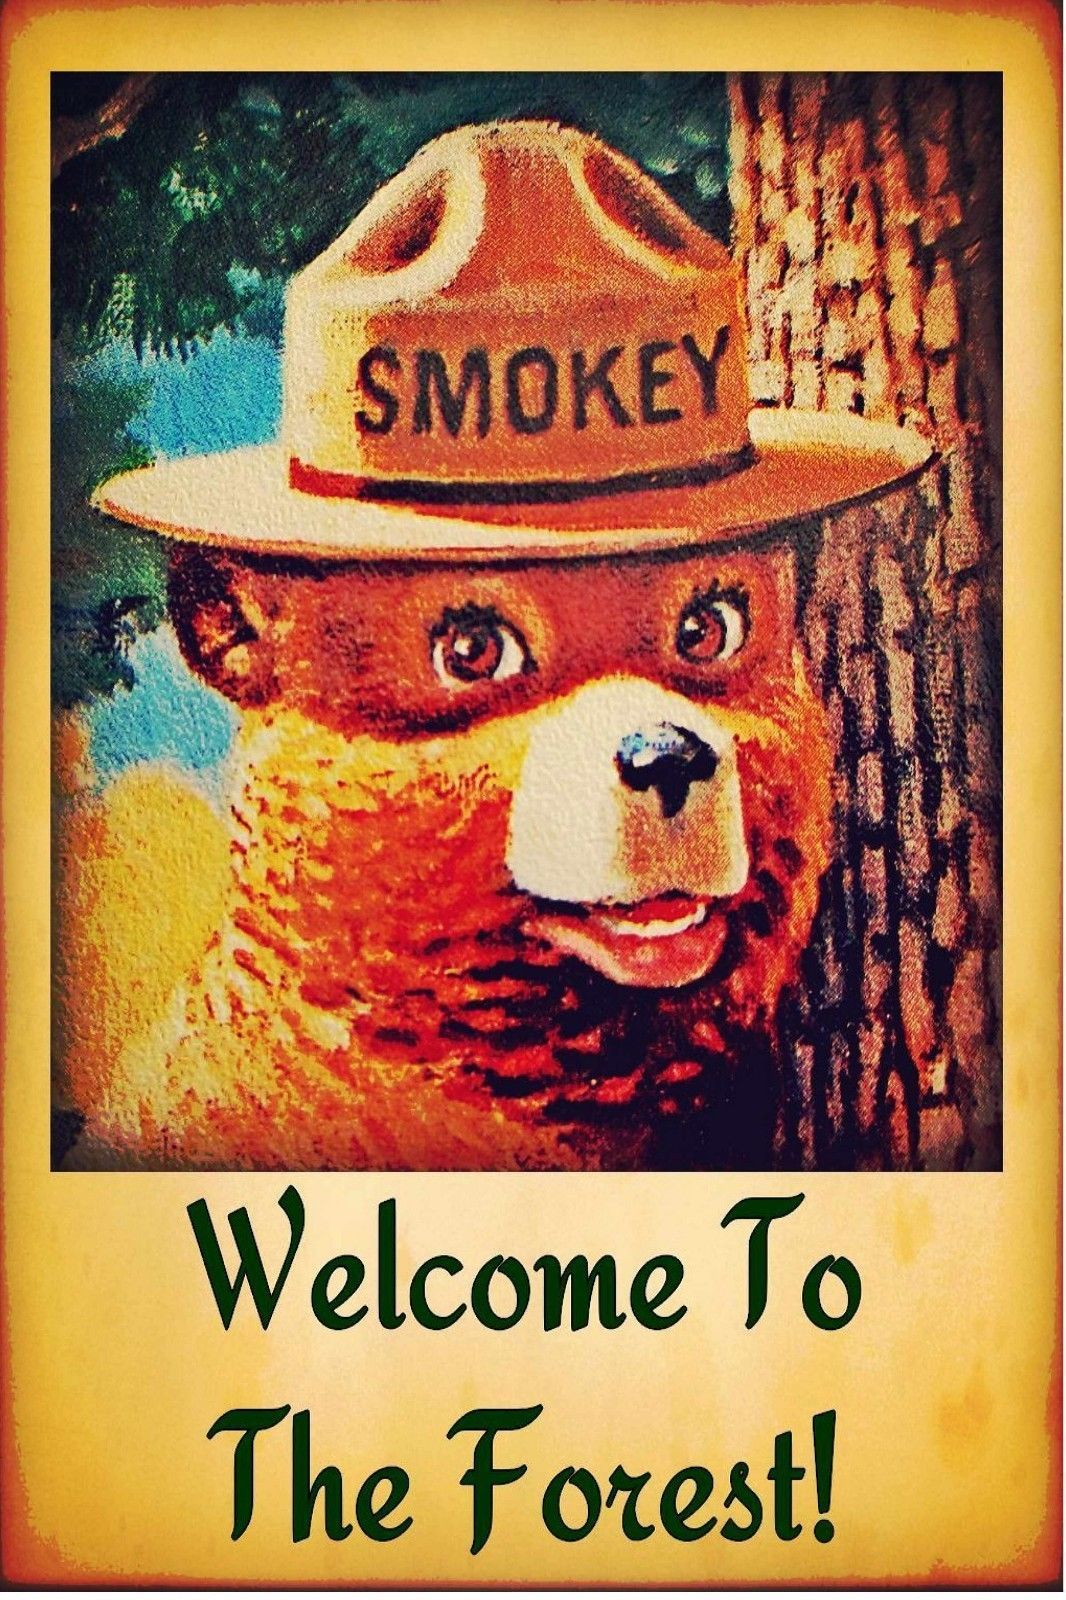 Primary image for SMOKEY BEAR POSTER | 24 x 36 INCH | WELCOME TO THE FOREST